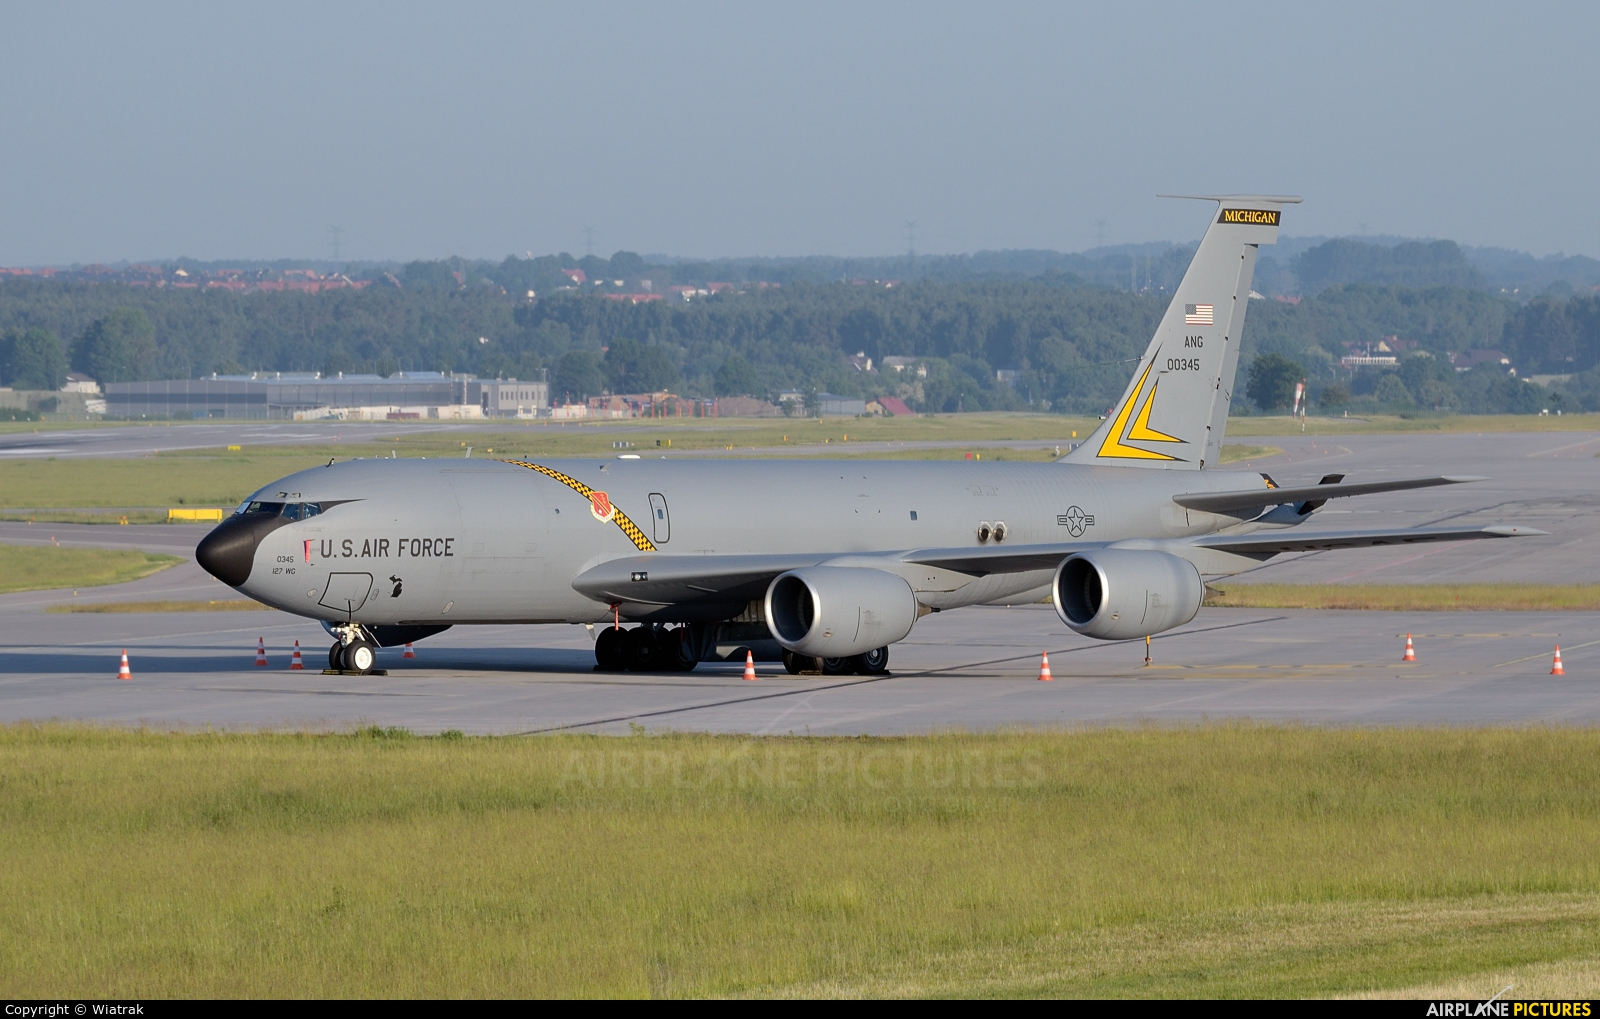 USA - Air National Guard 60-0345 aircraft at Gdańsk - Lech Wałęsa